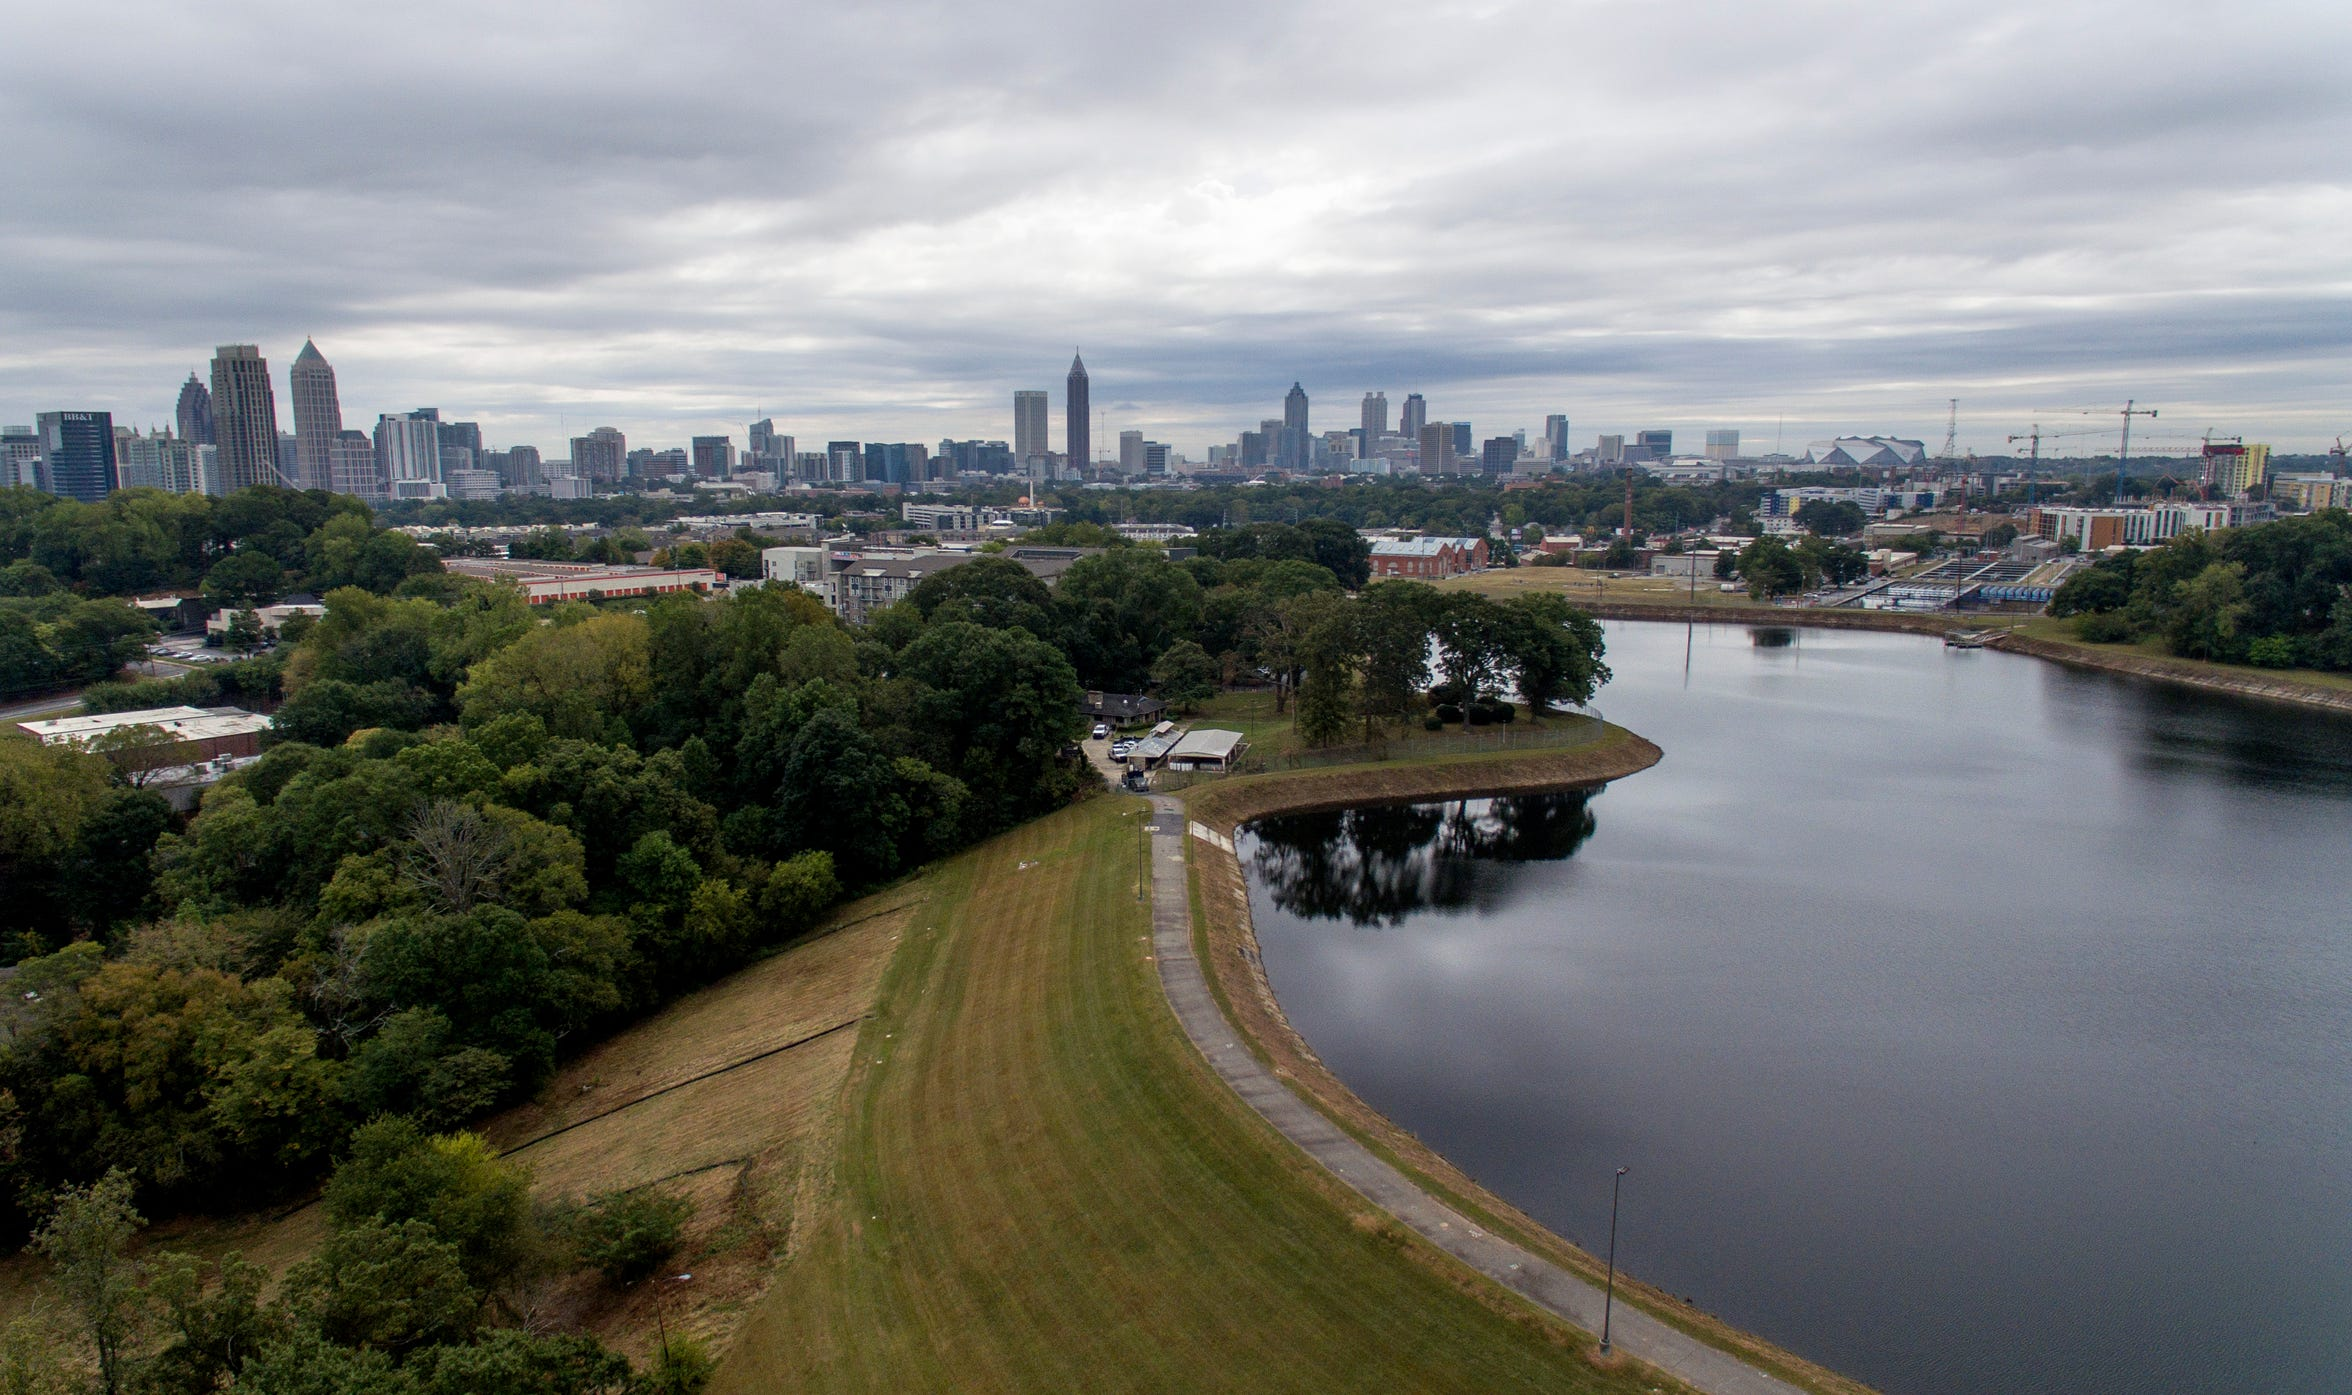 Reservoir No. 1, a 180 million-gallon water supply that has been out of service much of the past few decades, sits against the backdrop of the city skyline, Oct. 15, 2019, in Atlanta. The city made repairs and brought it back online in 2017, only to shut it down again after water leaks were noticed near businesses located beneath the dam. Were the dam to catastrophically fail, the water could inundate more than 1,000 single-family homes, dozens of businesses, a railroad and a portion of Interstate 75, according to an emergency action plan. (AP Photo/David Goldman)